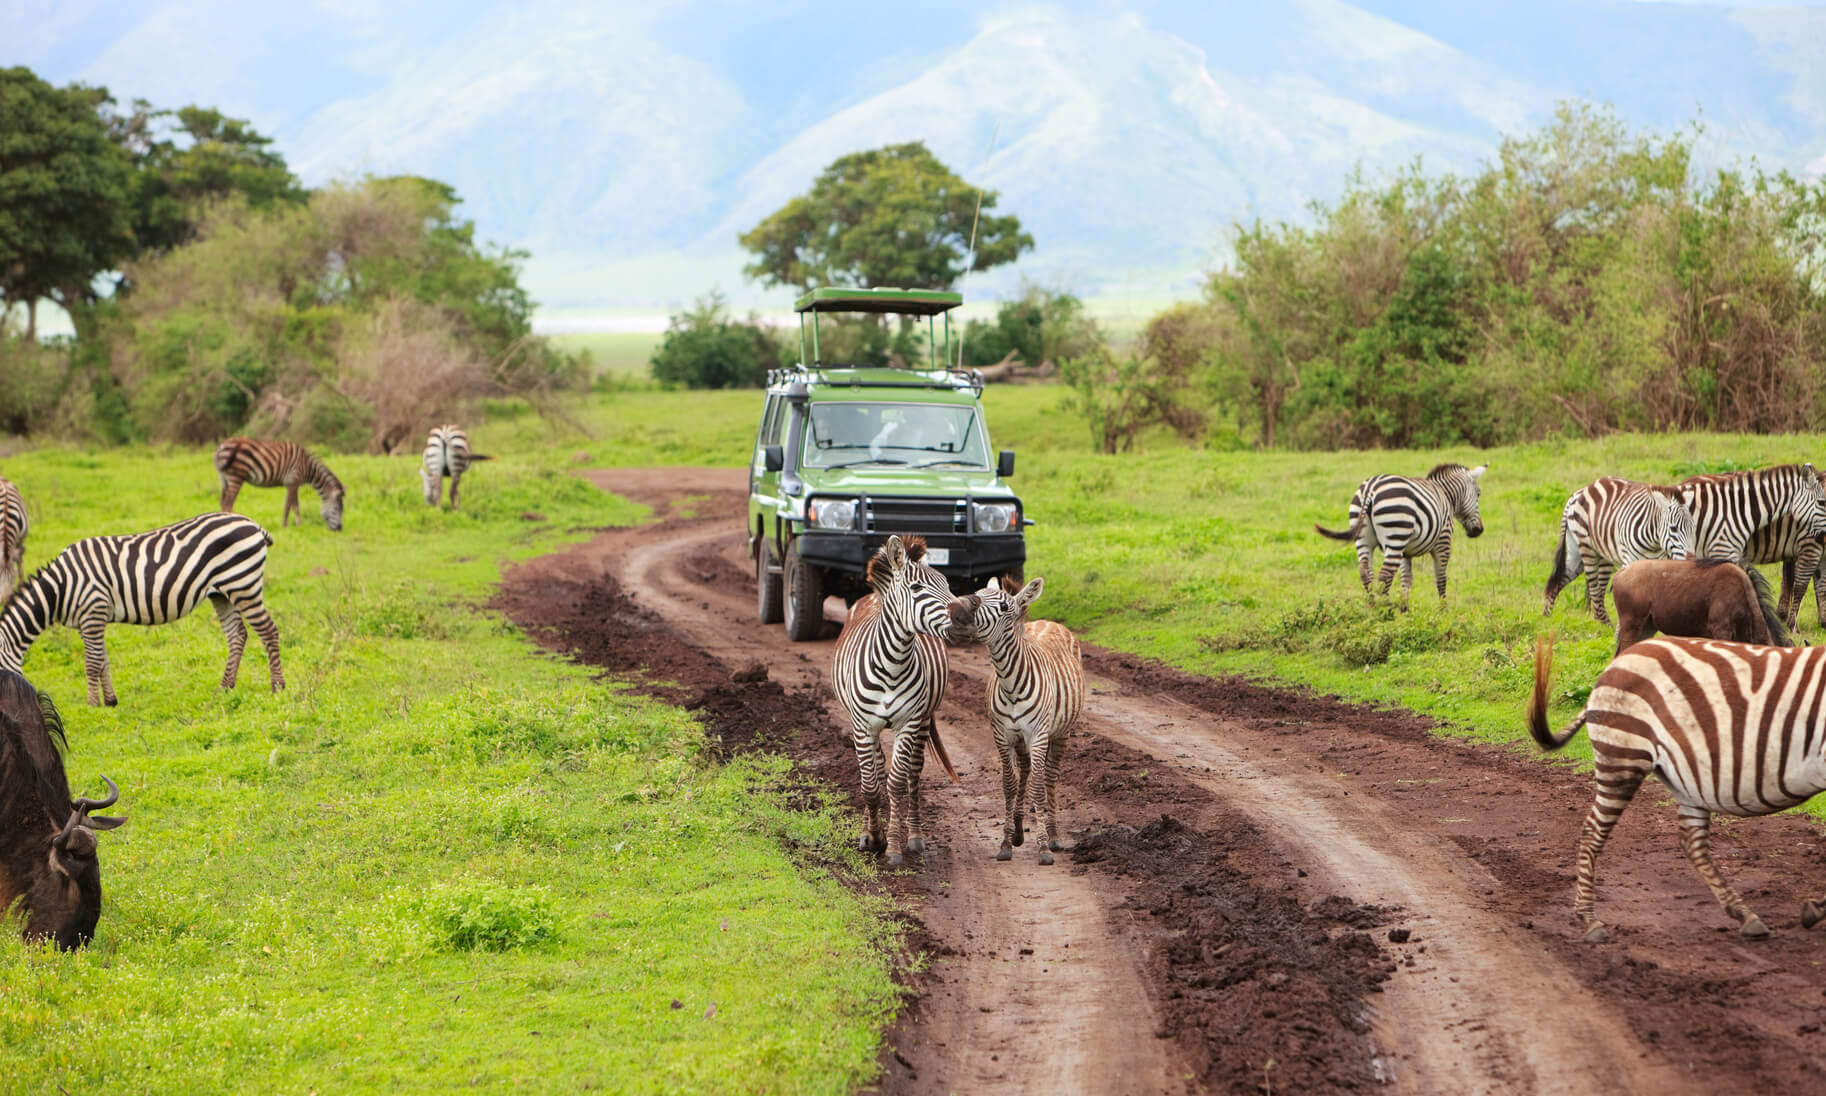 Chicago to Nairobi, Kenya for only $590 roundtrip (Sep-May dates)